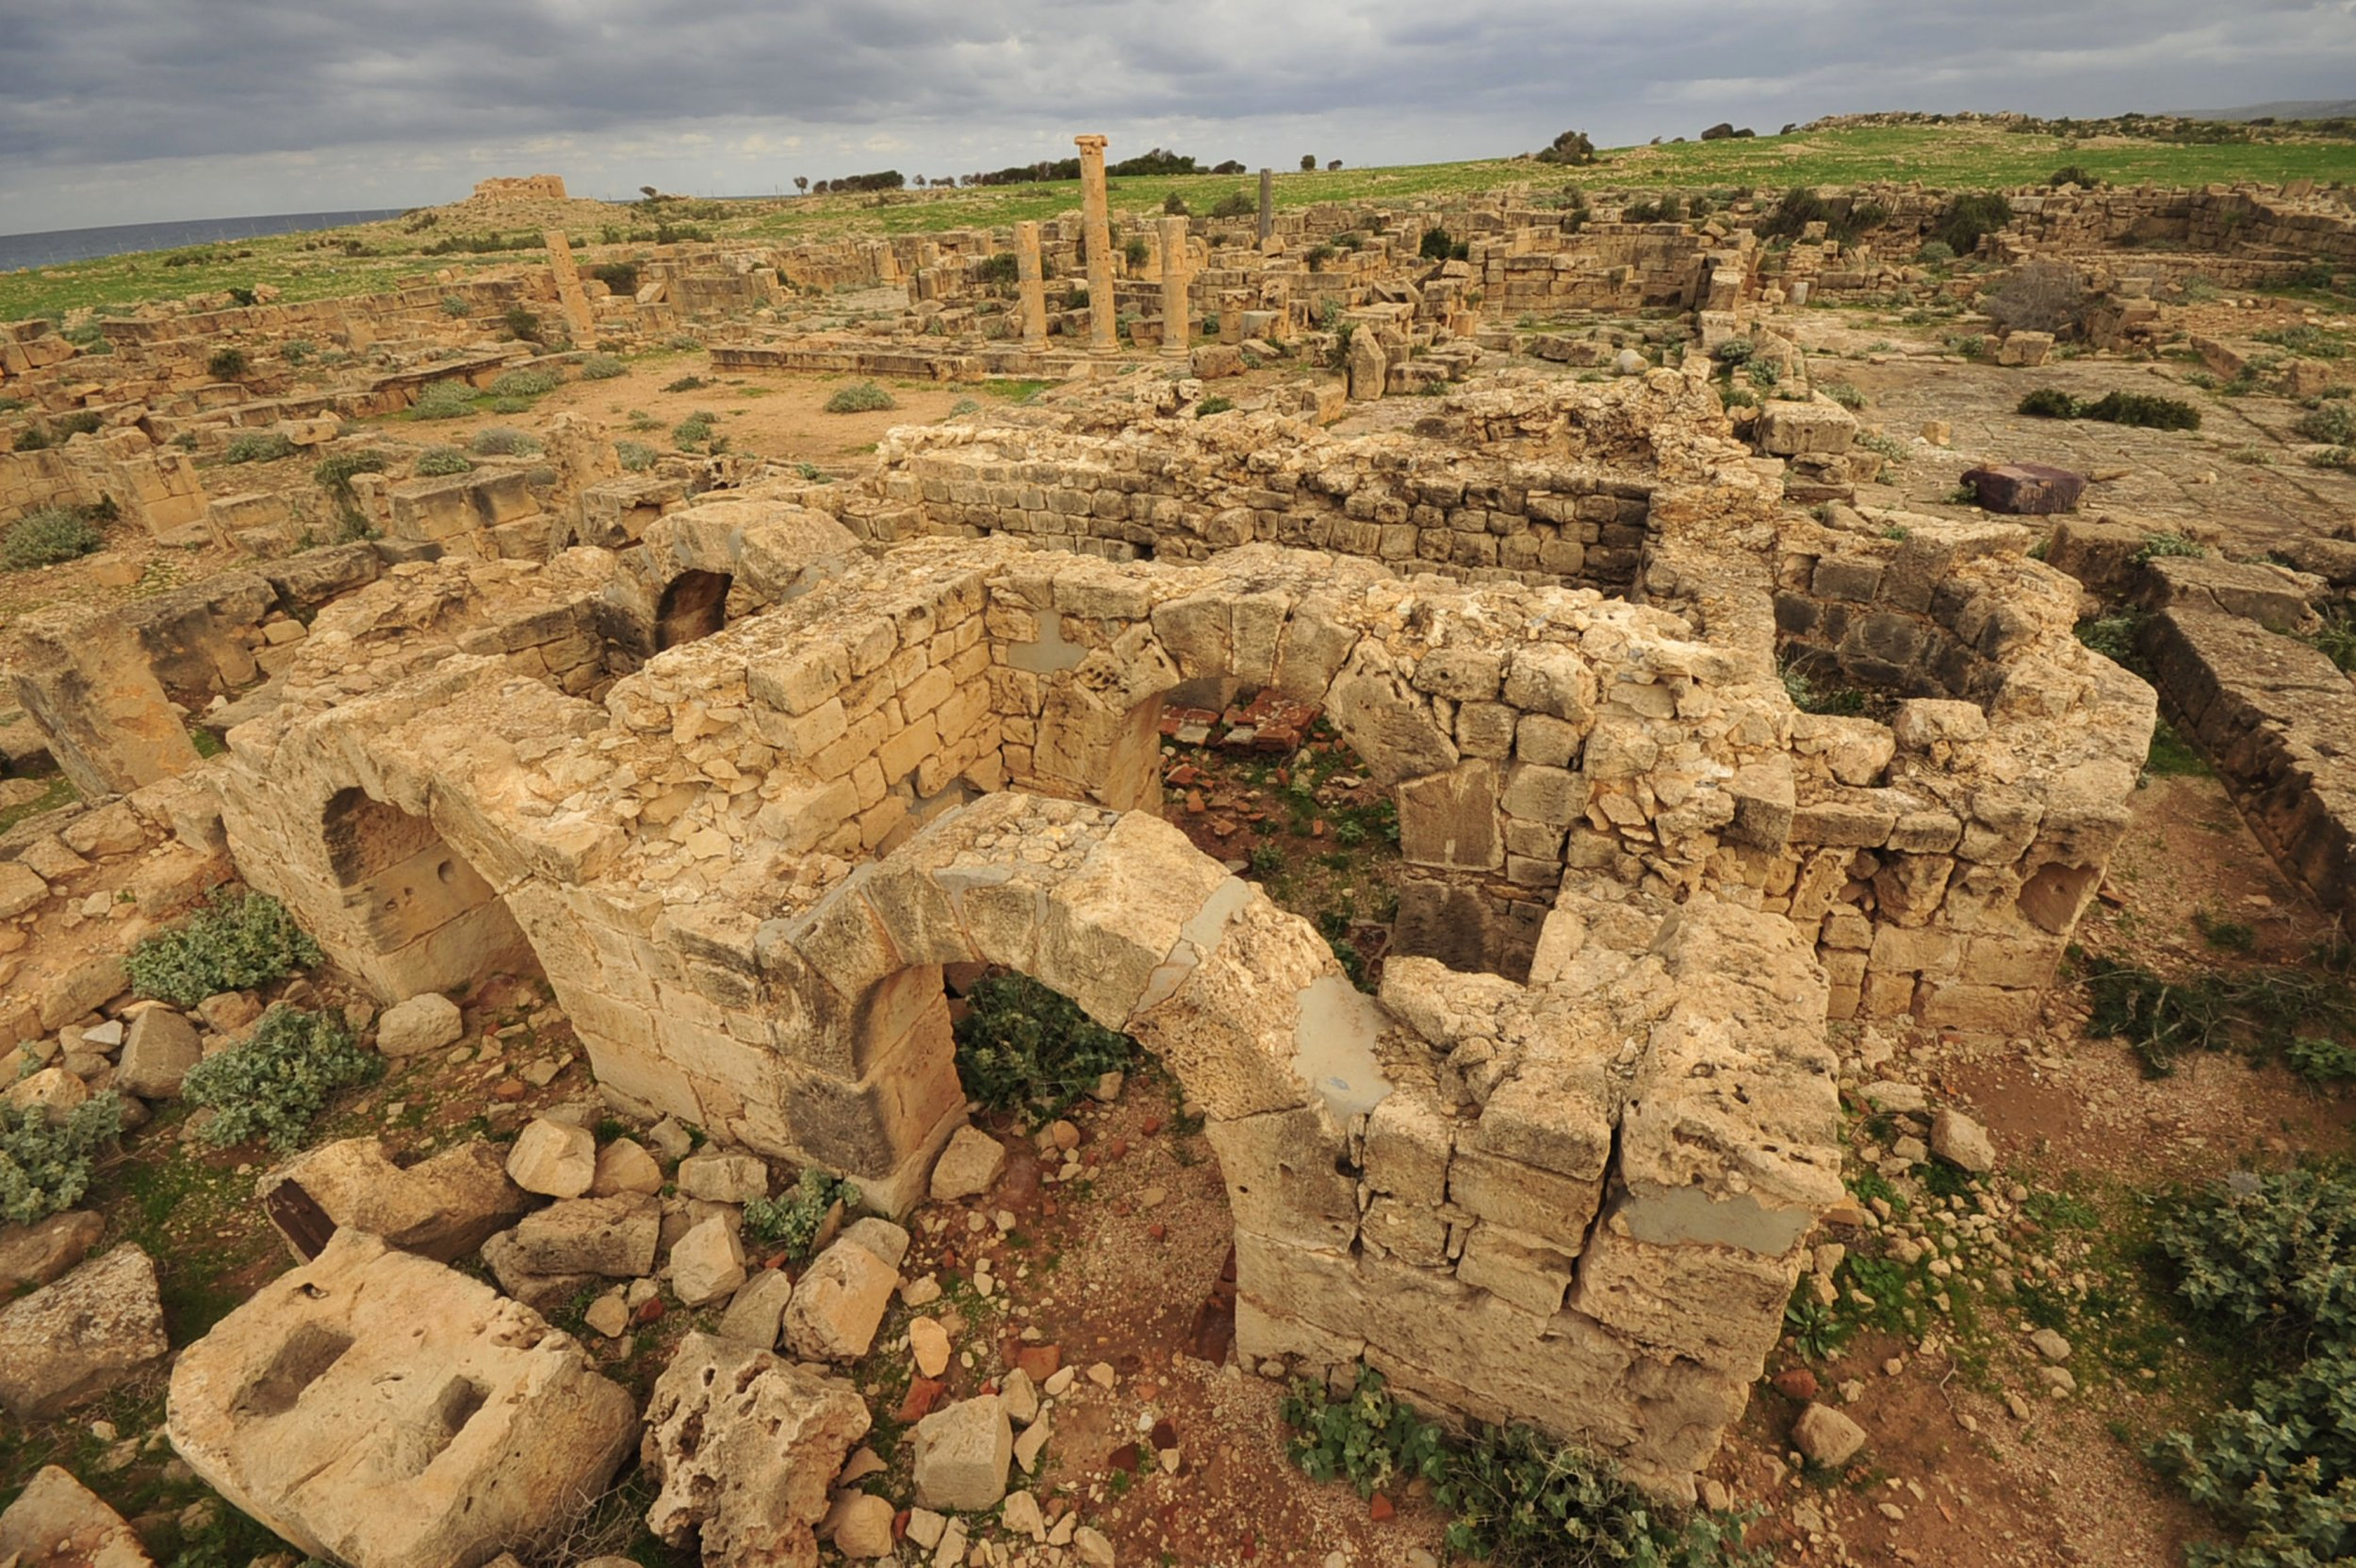 A part of the ancient city of Ptolemais, Libya